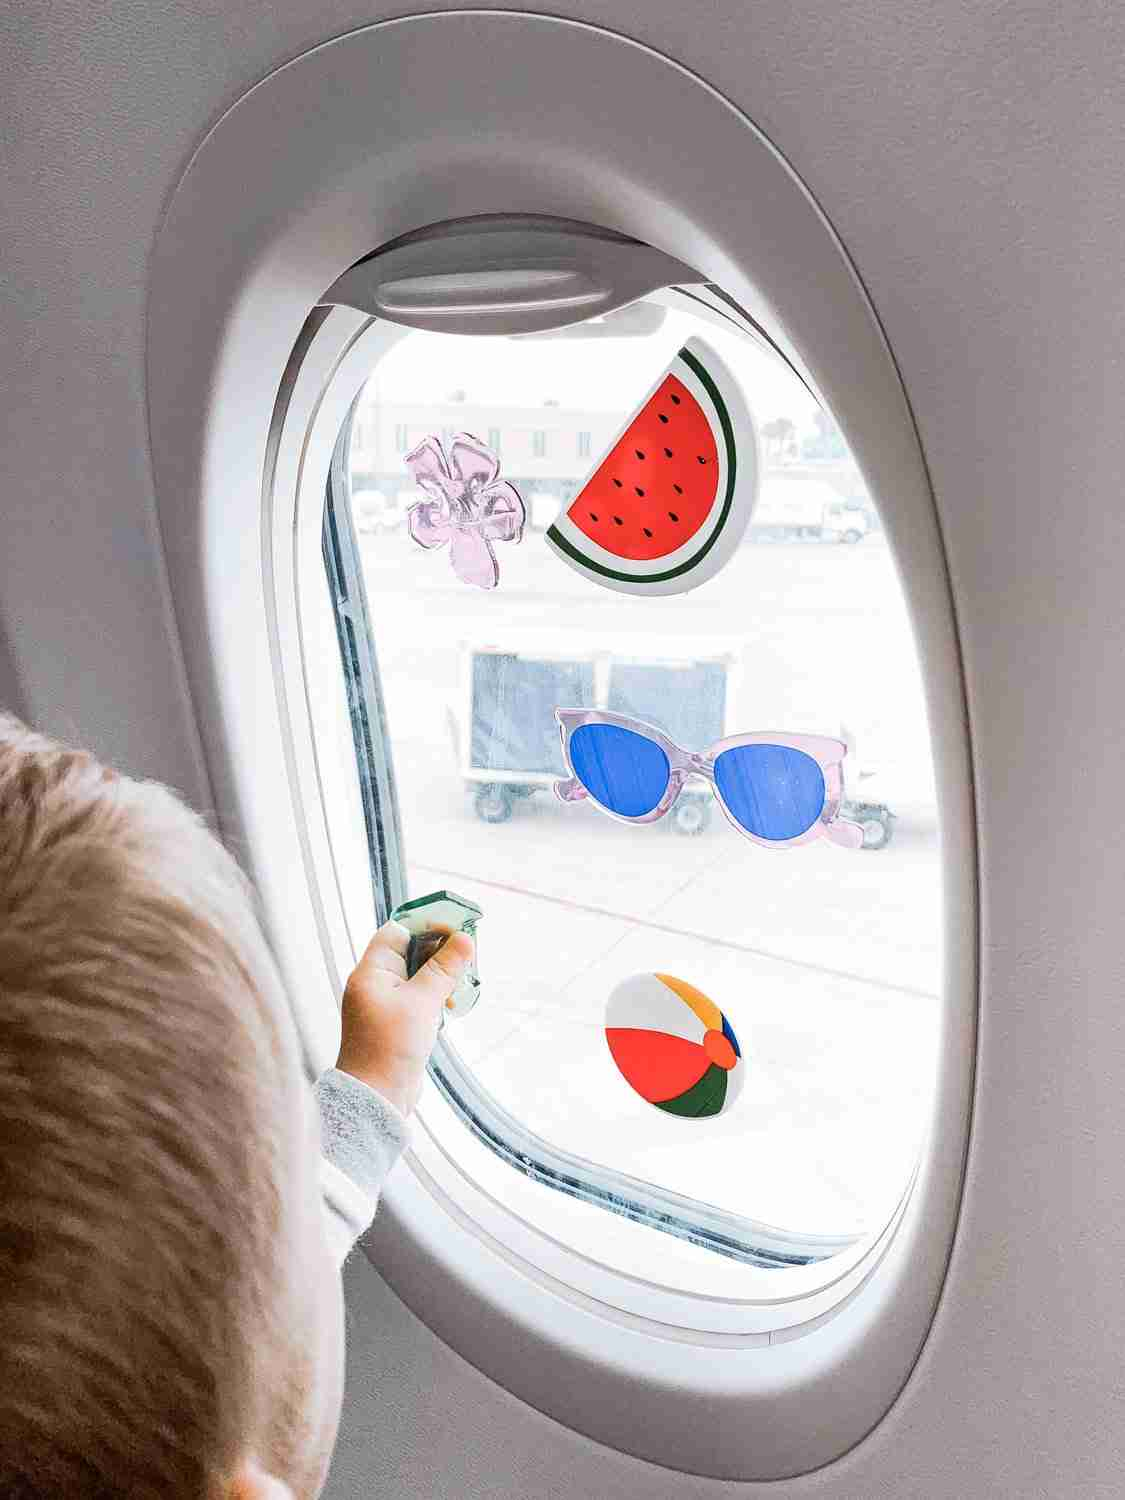 Boy playing with kid's activity gel window clings on airplane window